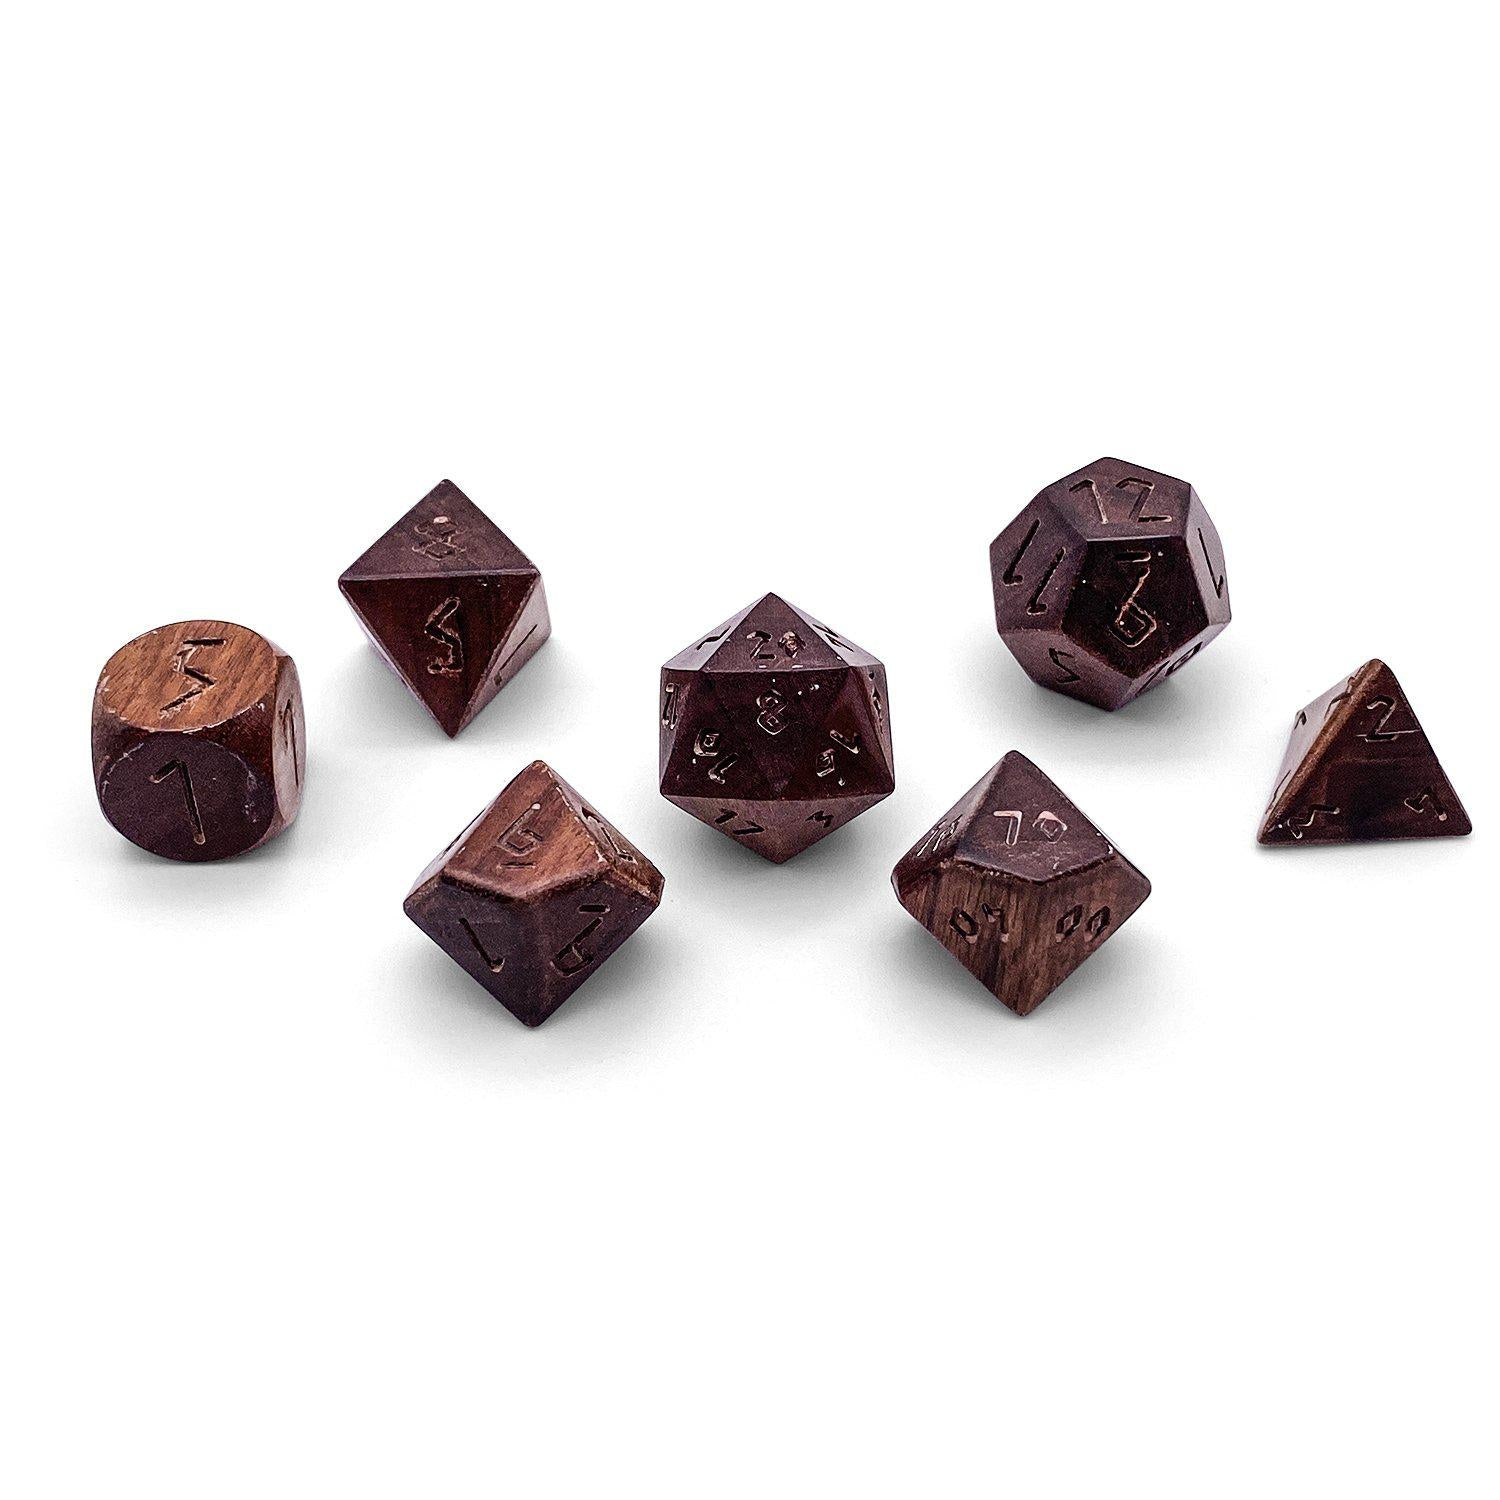 7 piece Wooden Dice Set - Bubinga